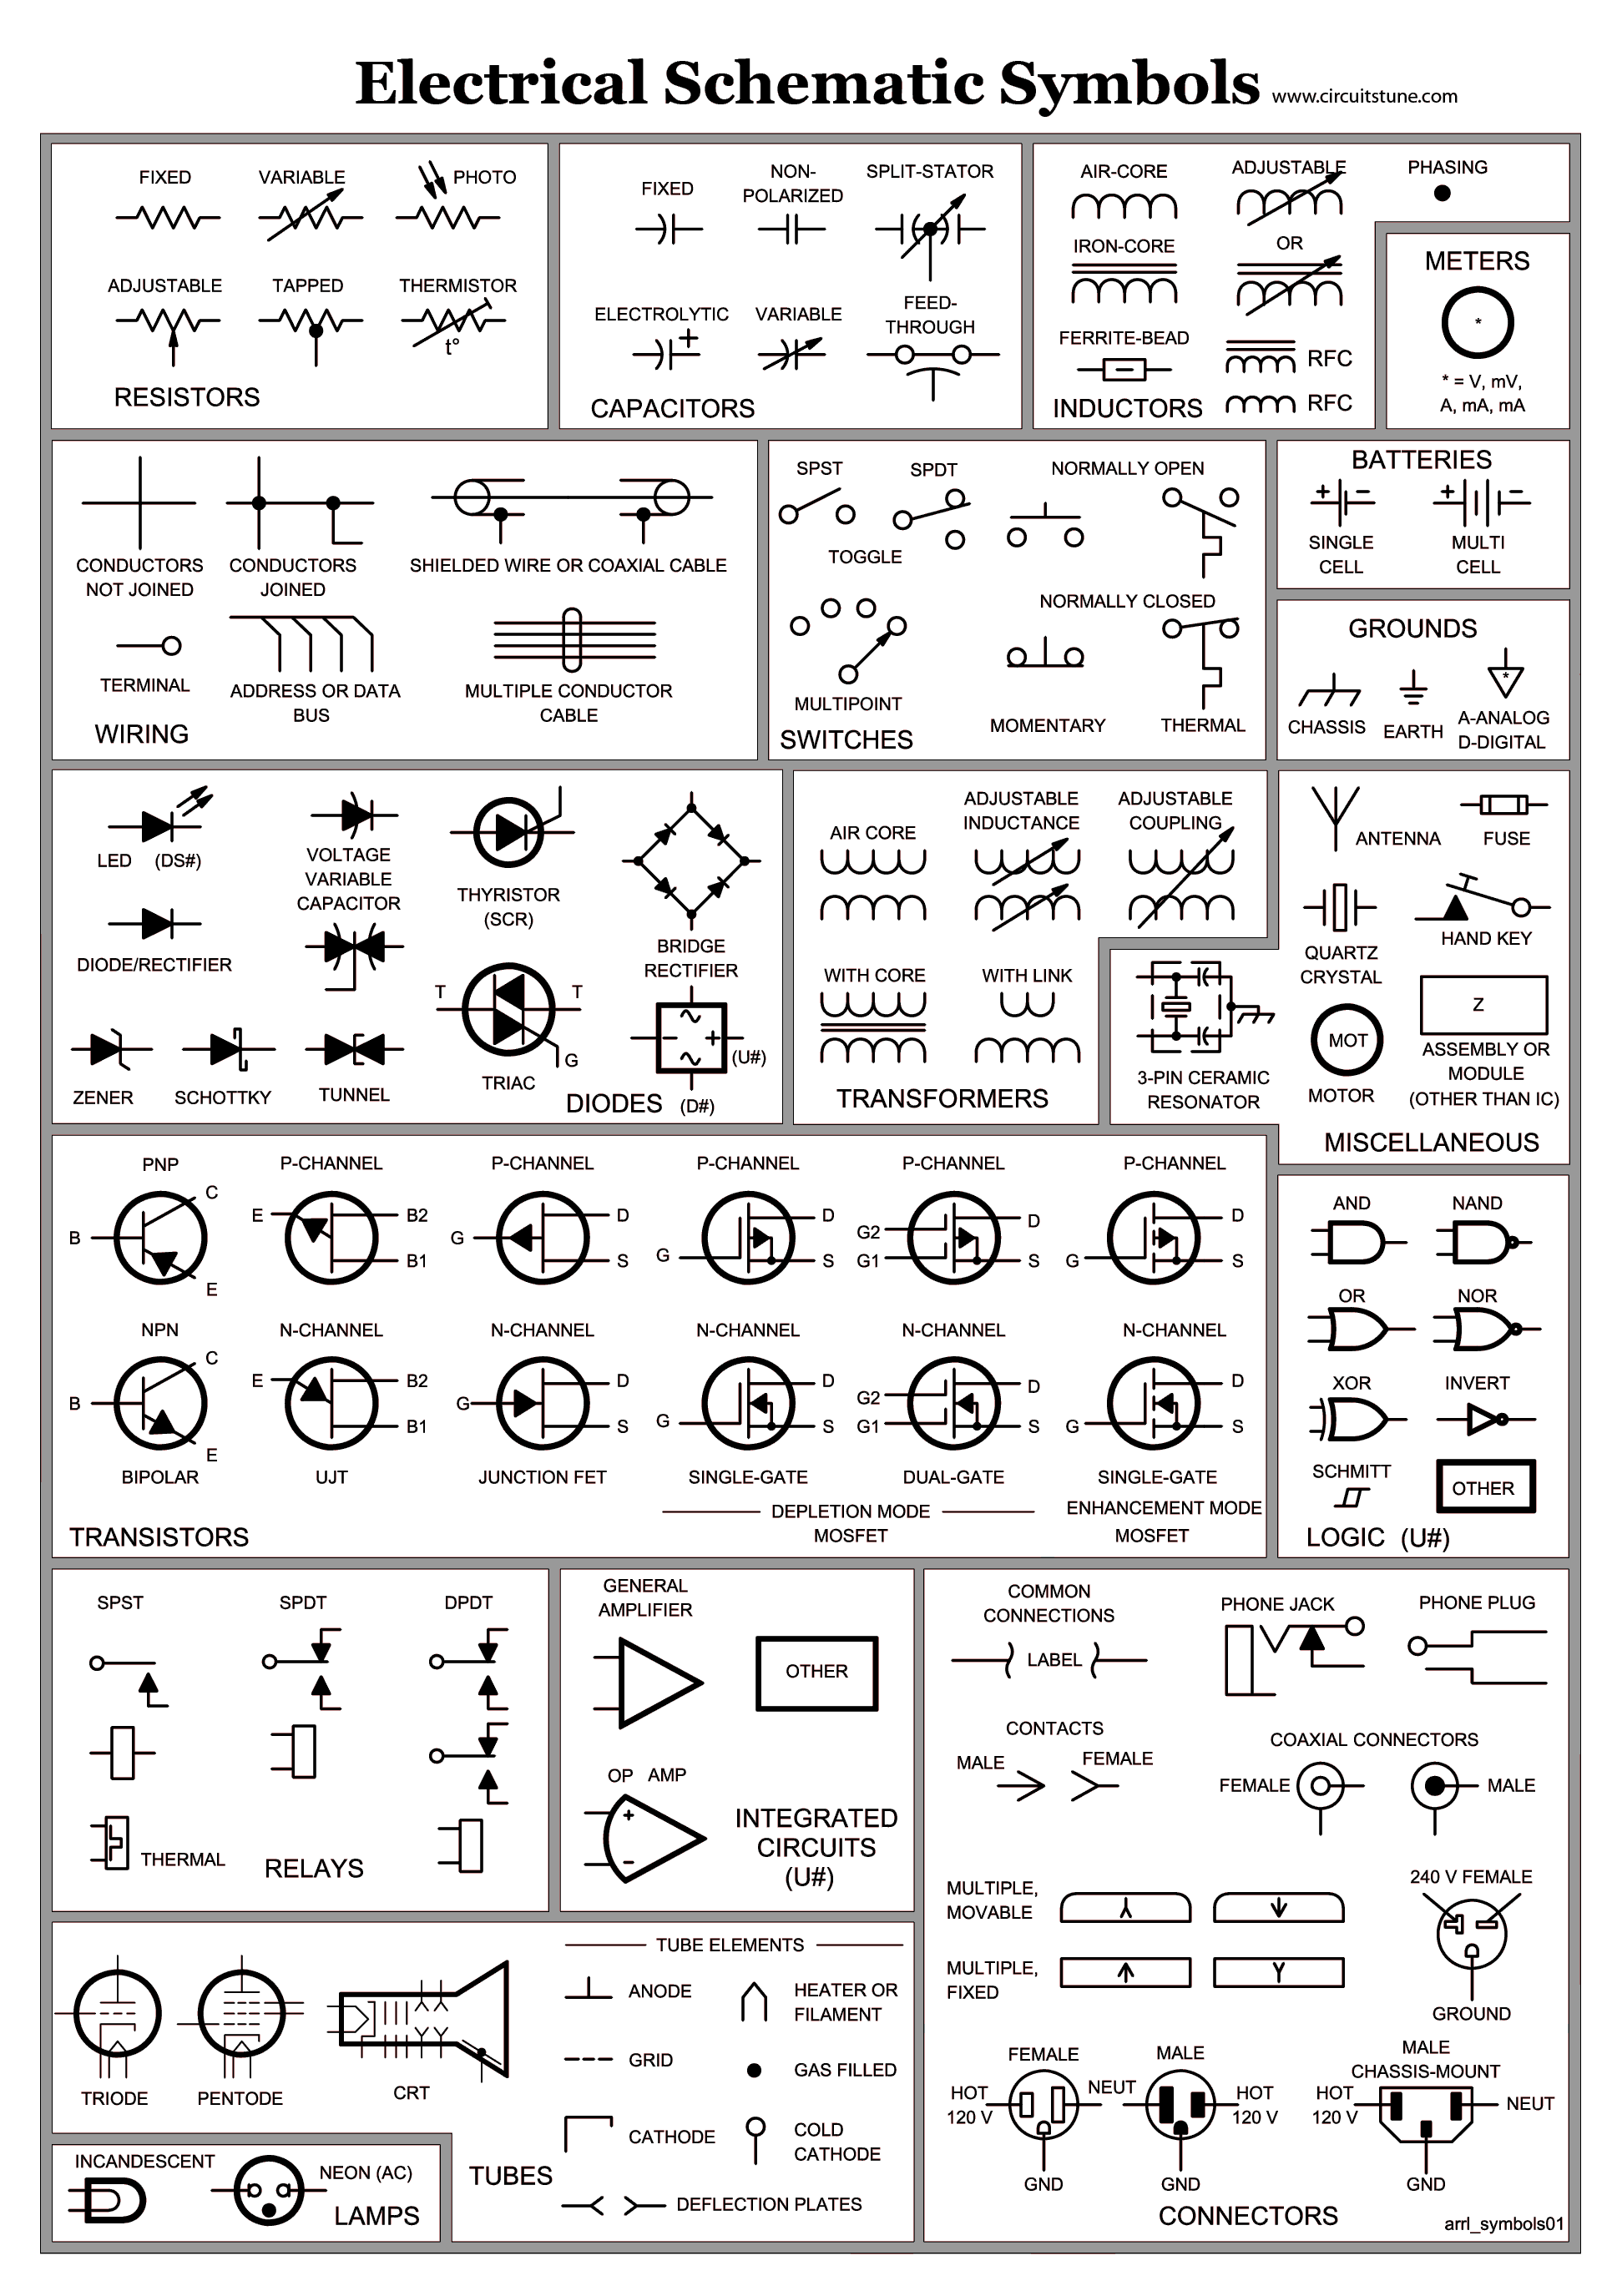 German wiring diagrams wiring diagrams schematics german electrical symbols wiring diagrams schematics electronics wiring diagram symbols wiring diagrams schematics electrical schematic symbols wire diagram ccuart Image collections